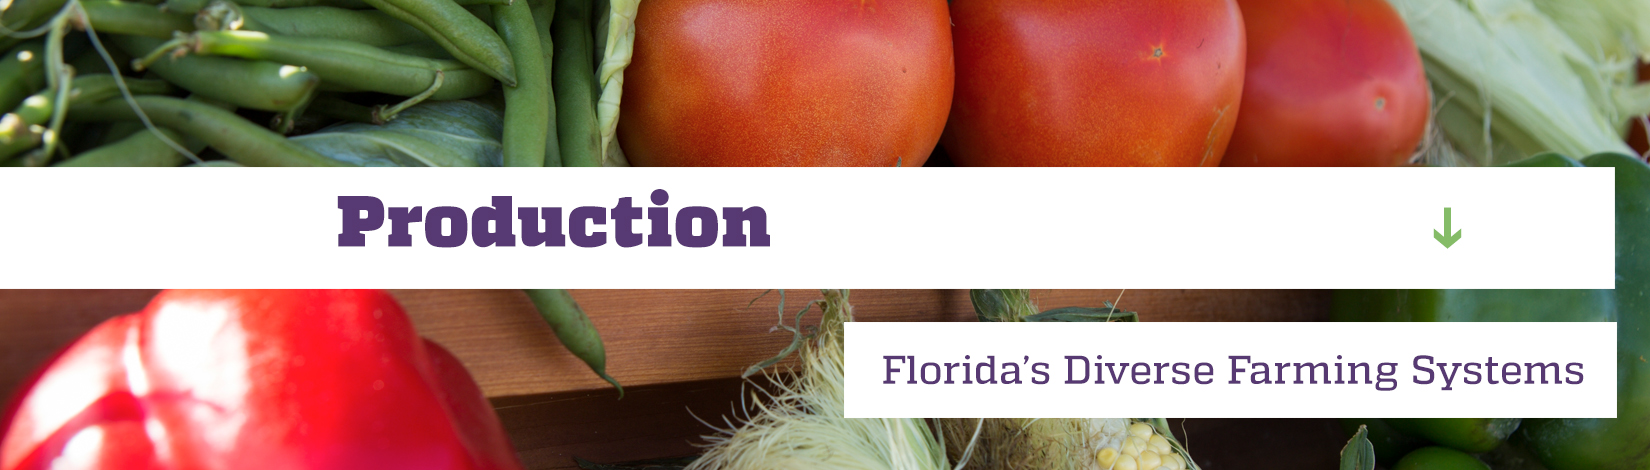 Production-Managing Florida's Diverse Farming Systems